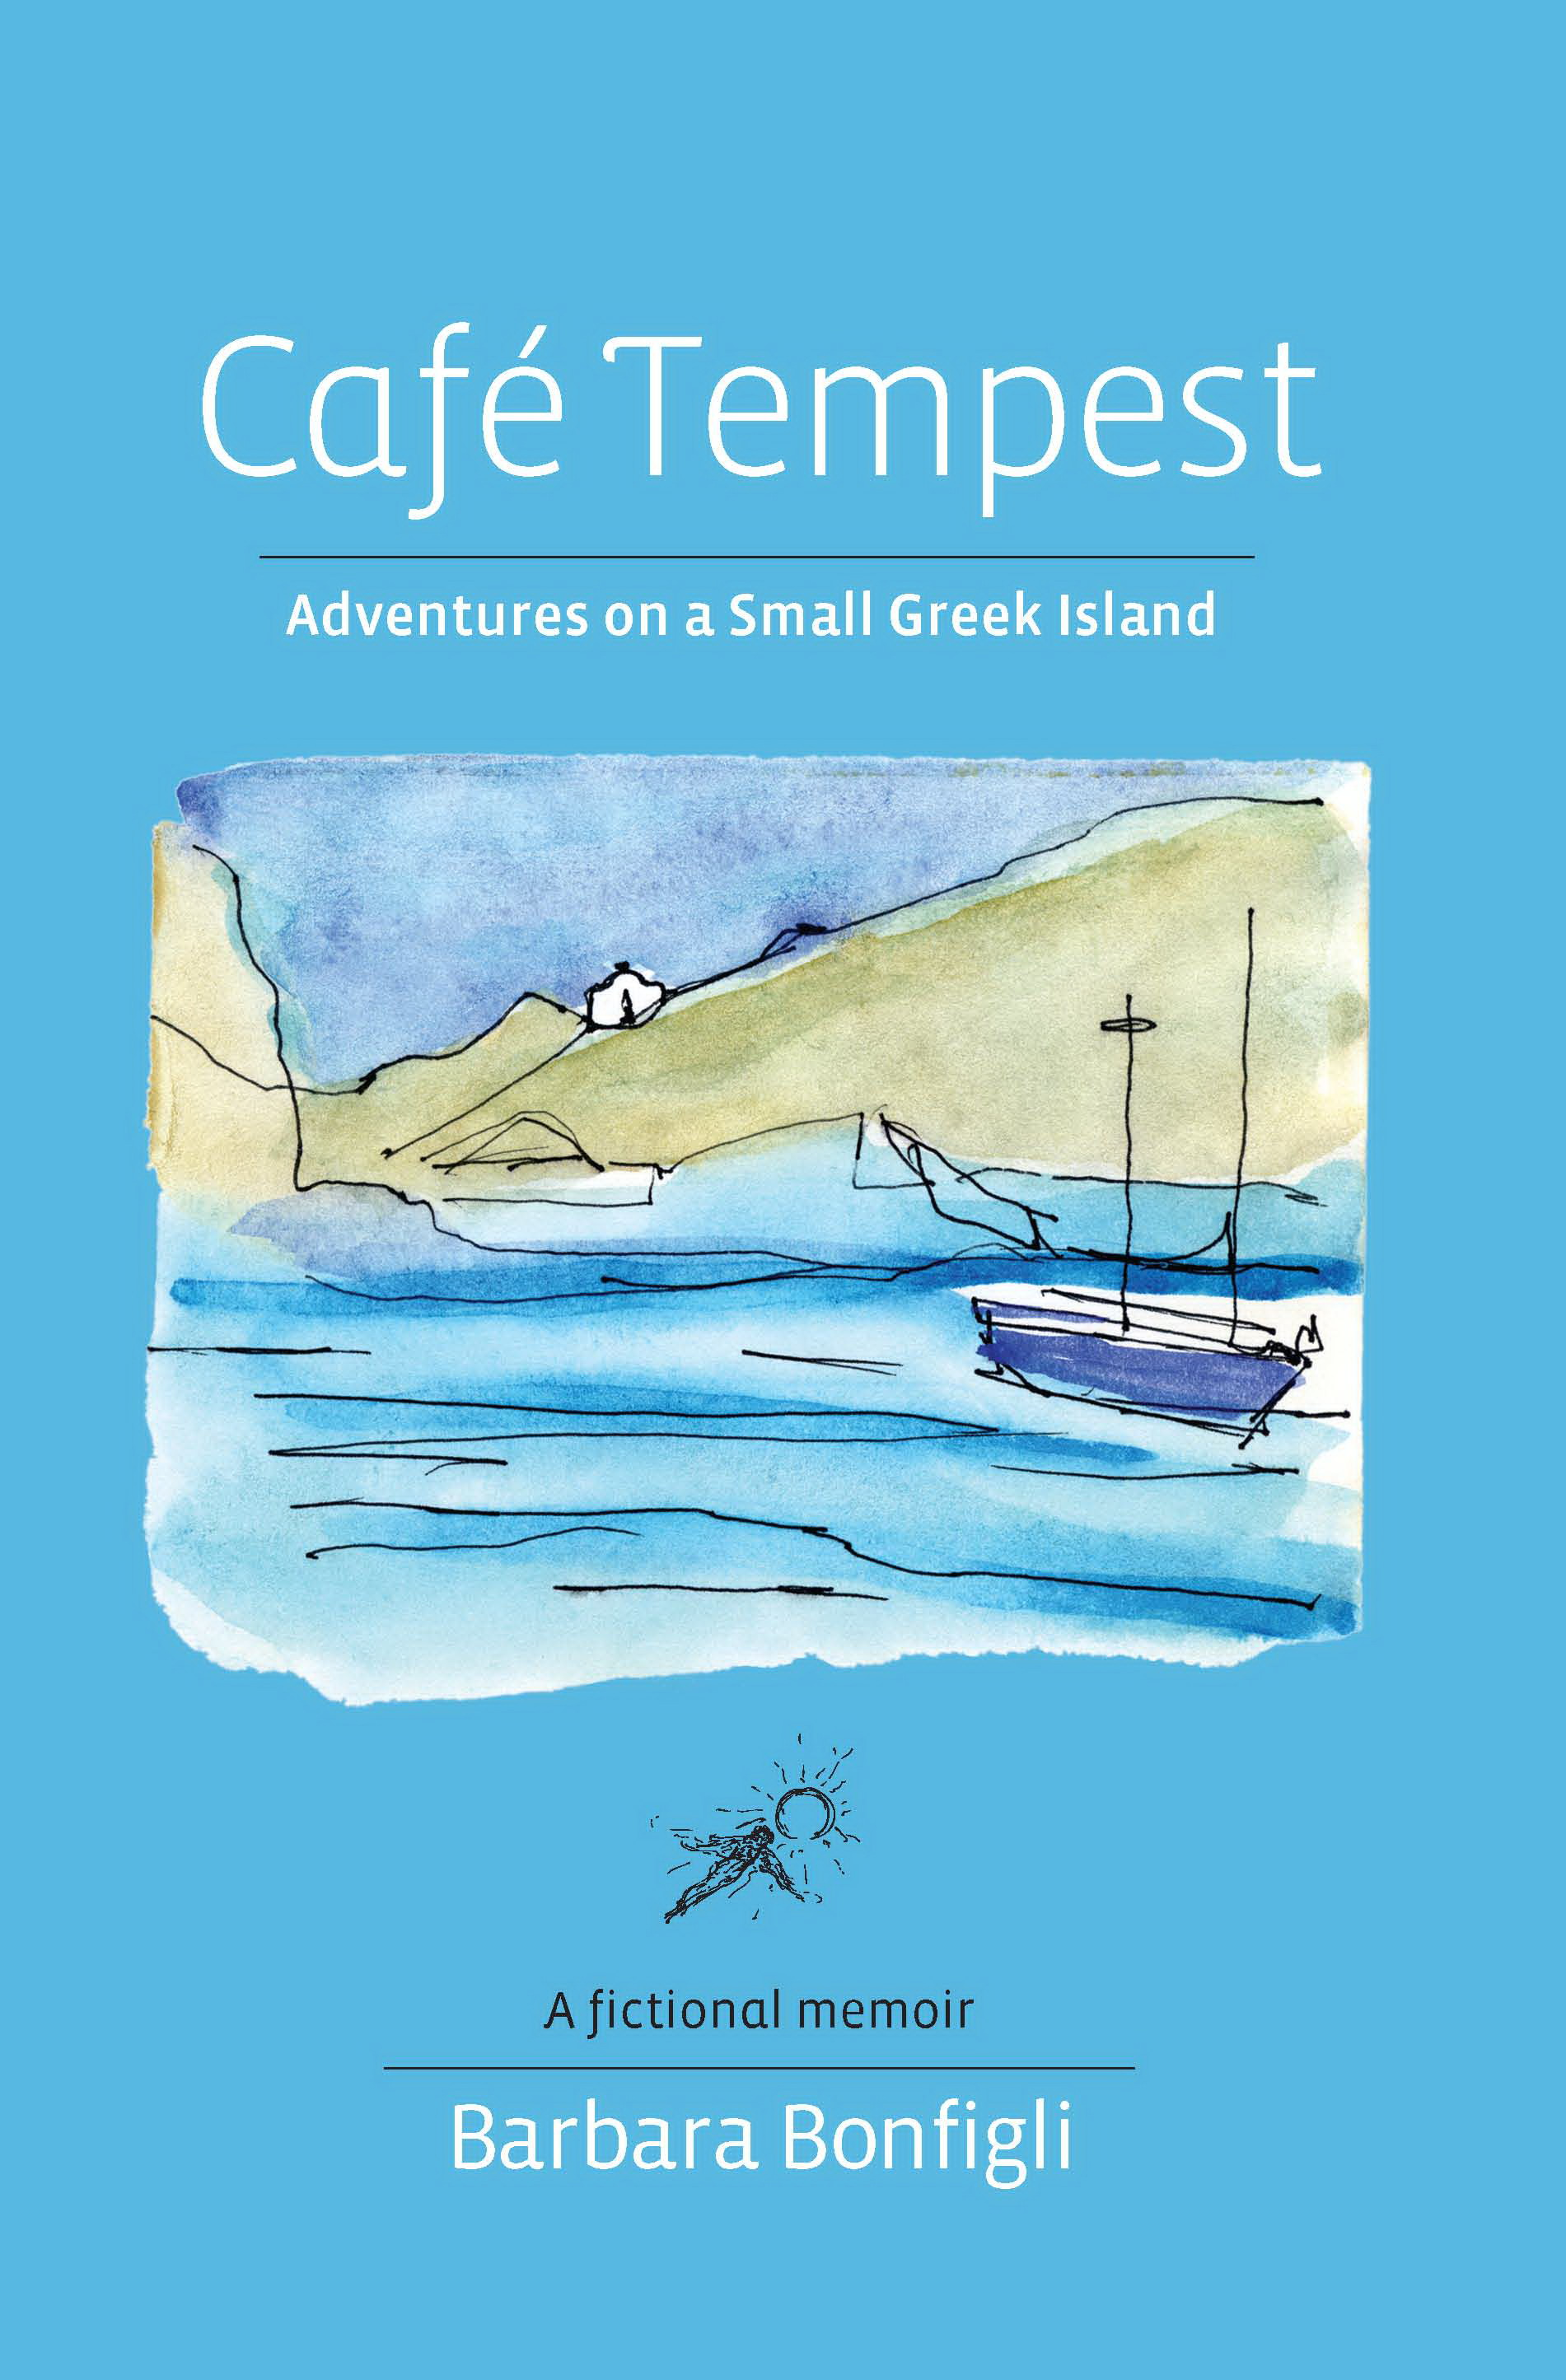 image - cafe_tempest_softcover_final